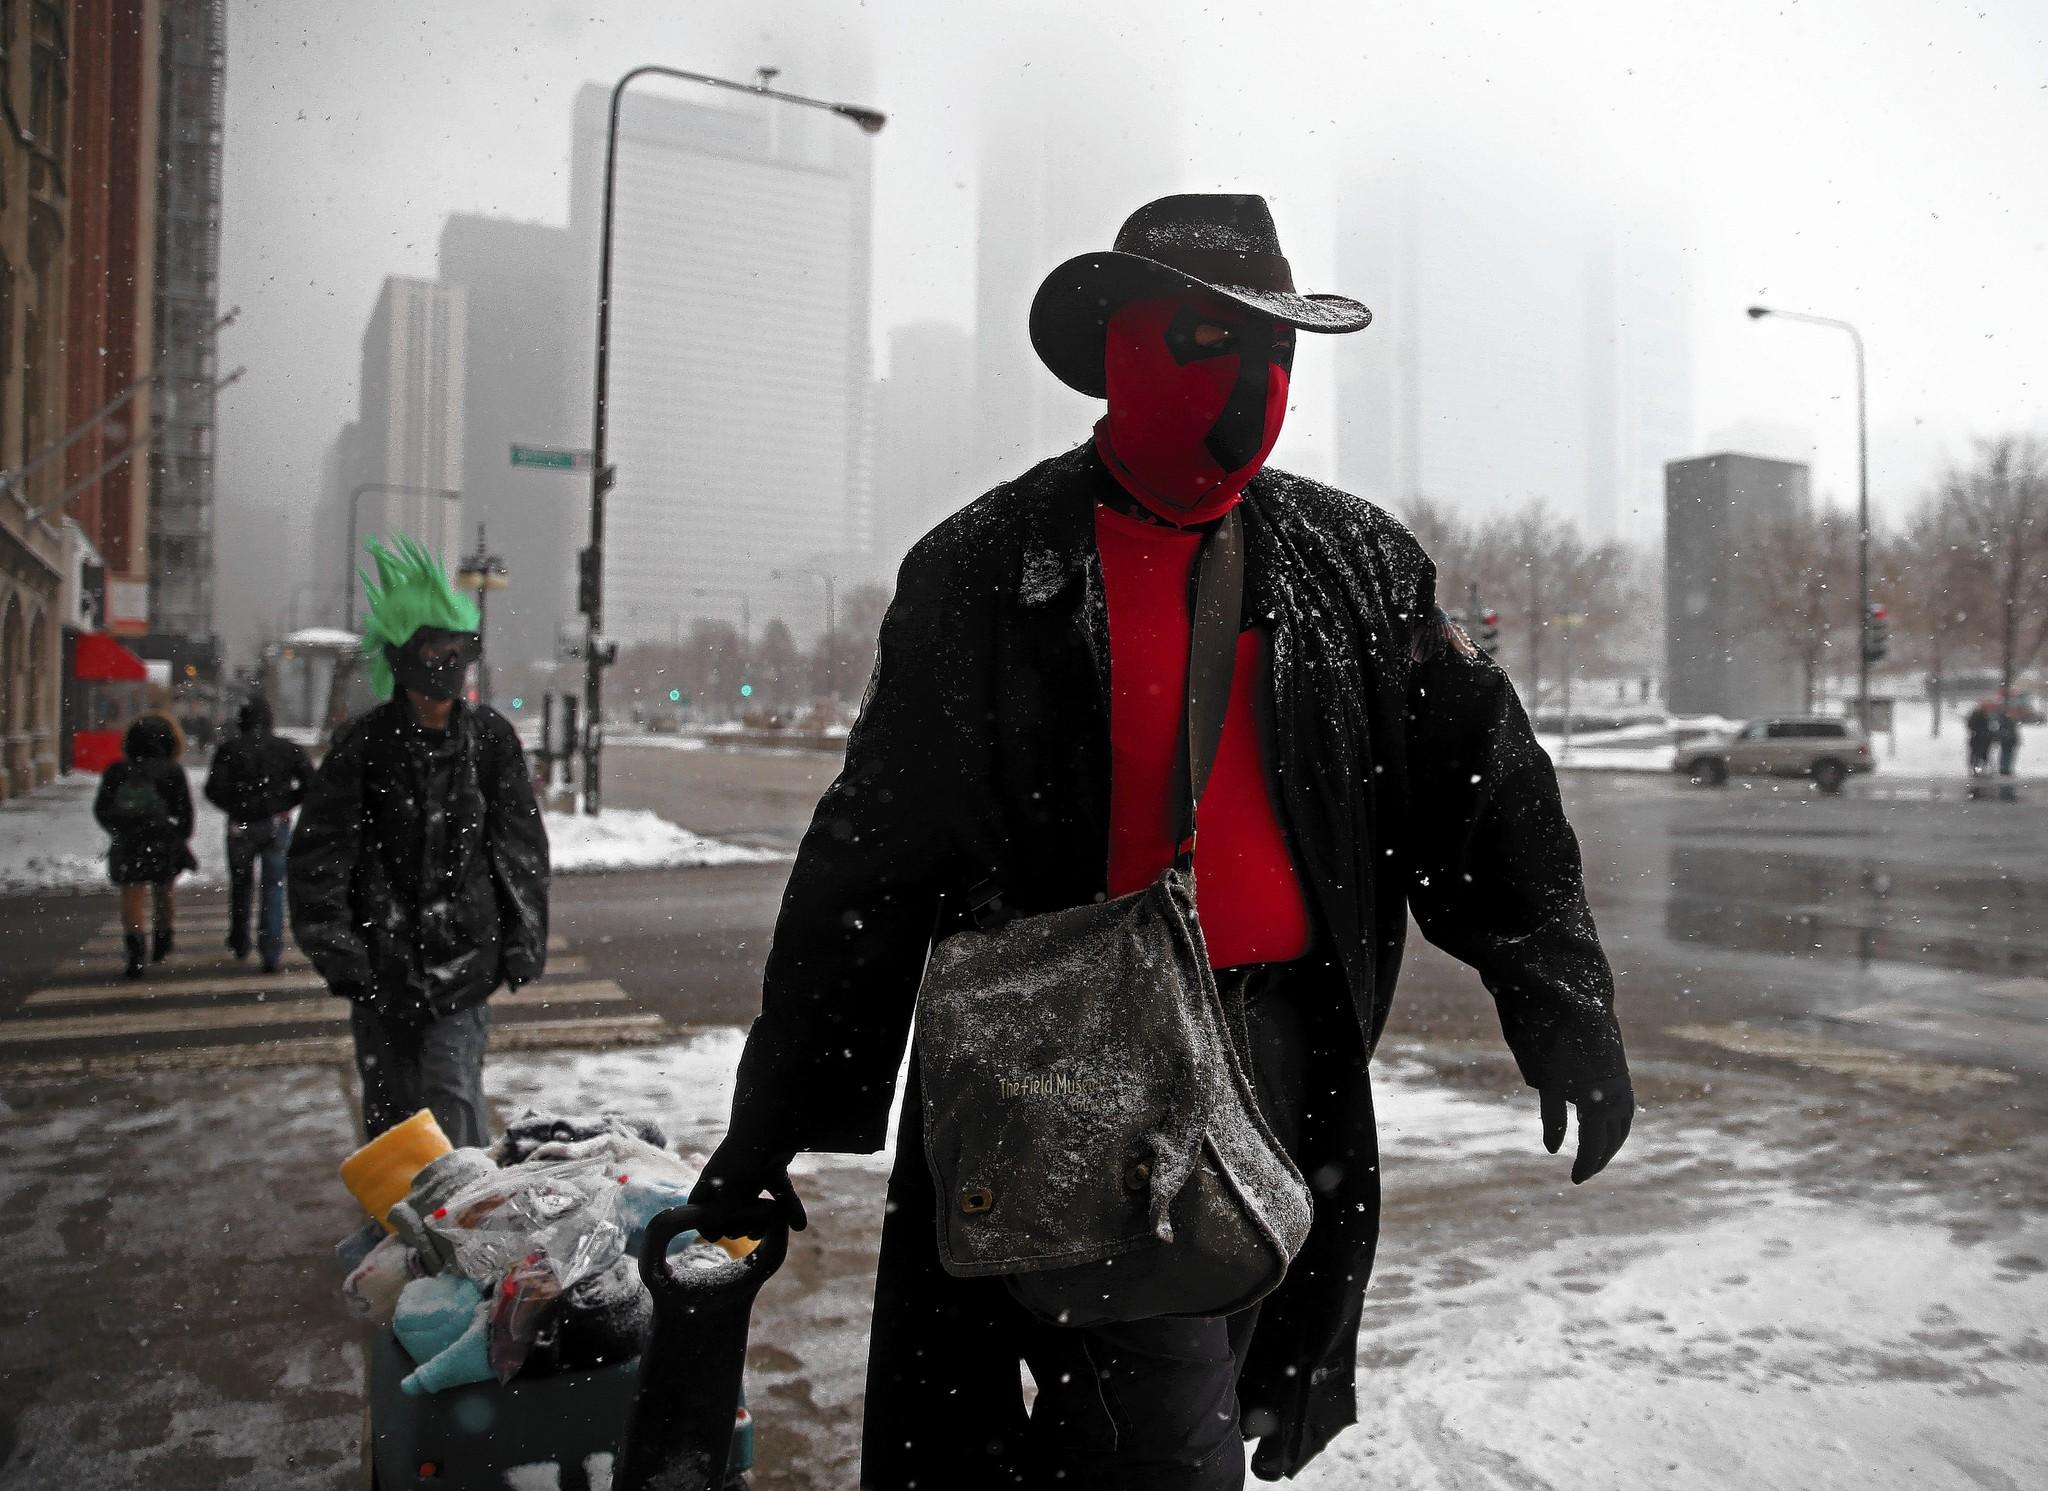 Crusader Prime, right, and The Variable walk Michigan Avenue to deliver food and blankets to the homeless in downtown Chicago.